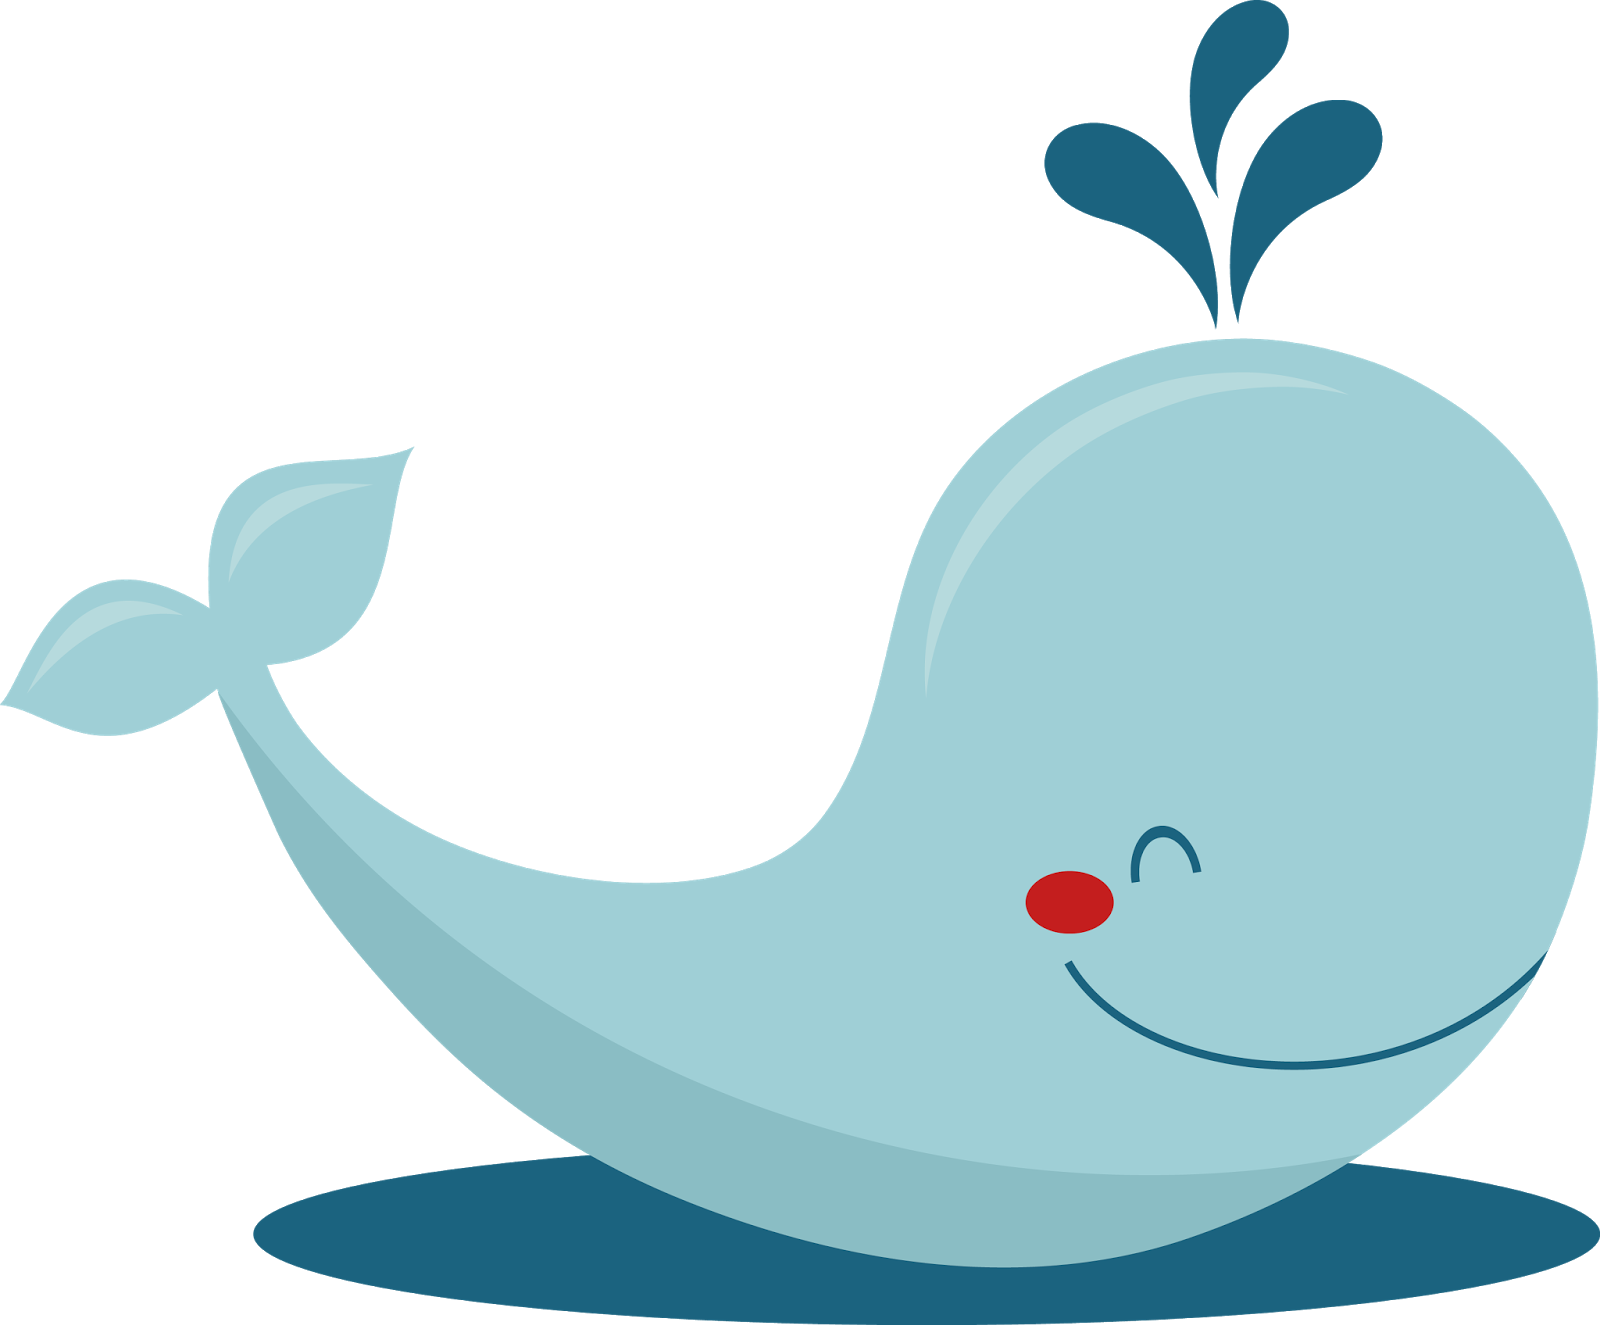 Whale clipart #3, Download drawings